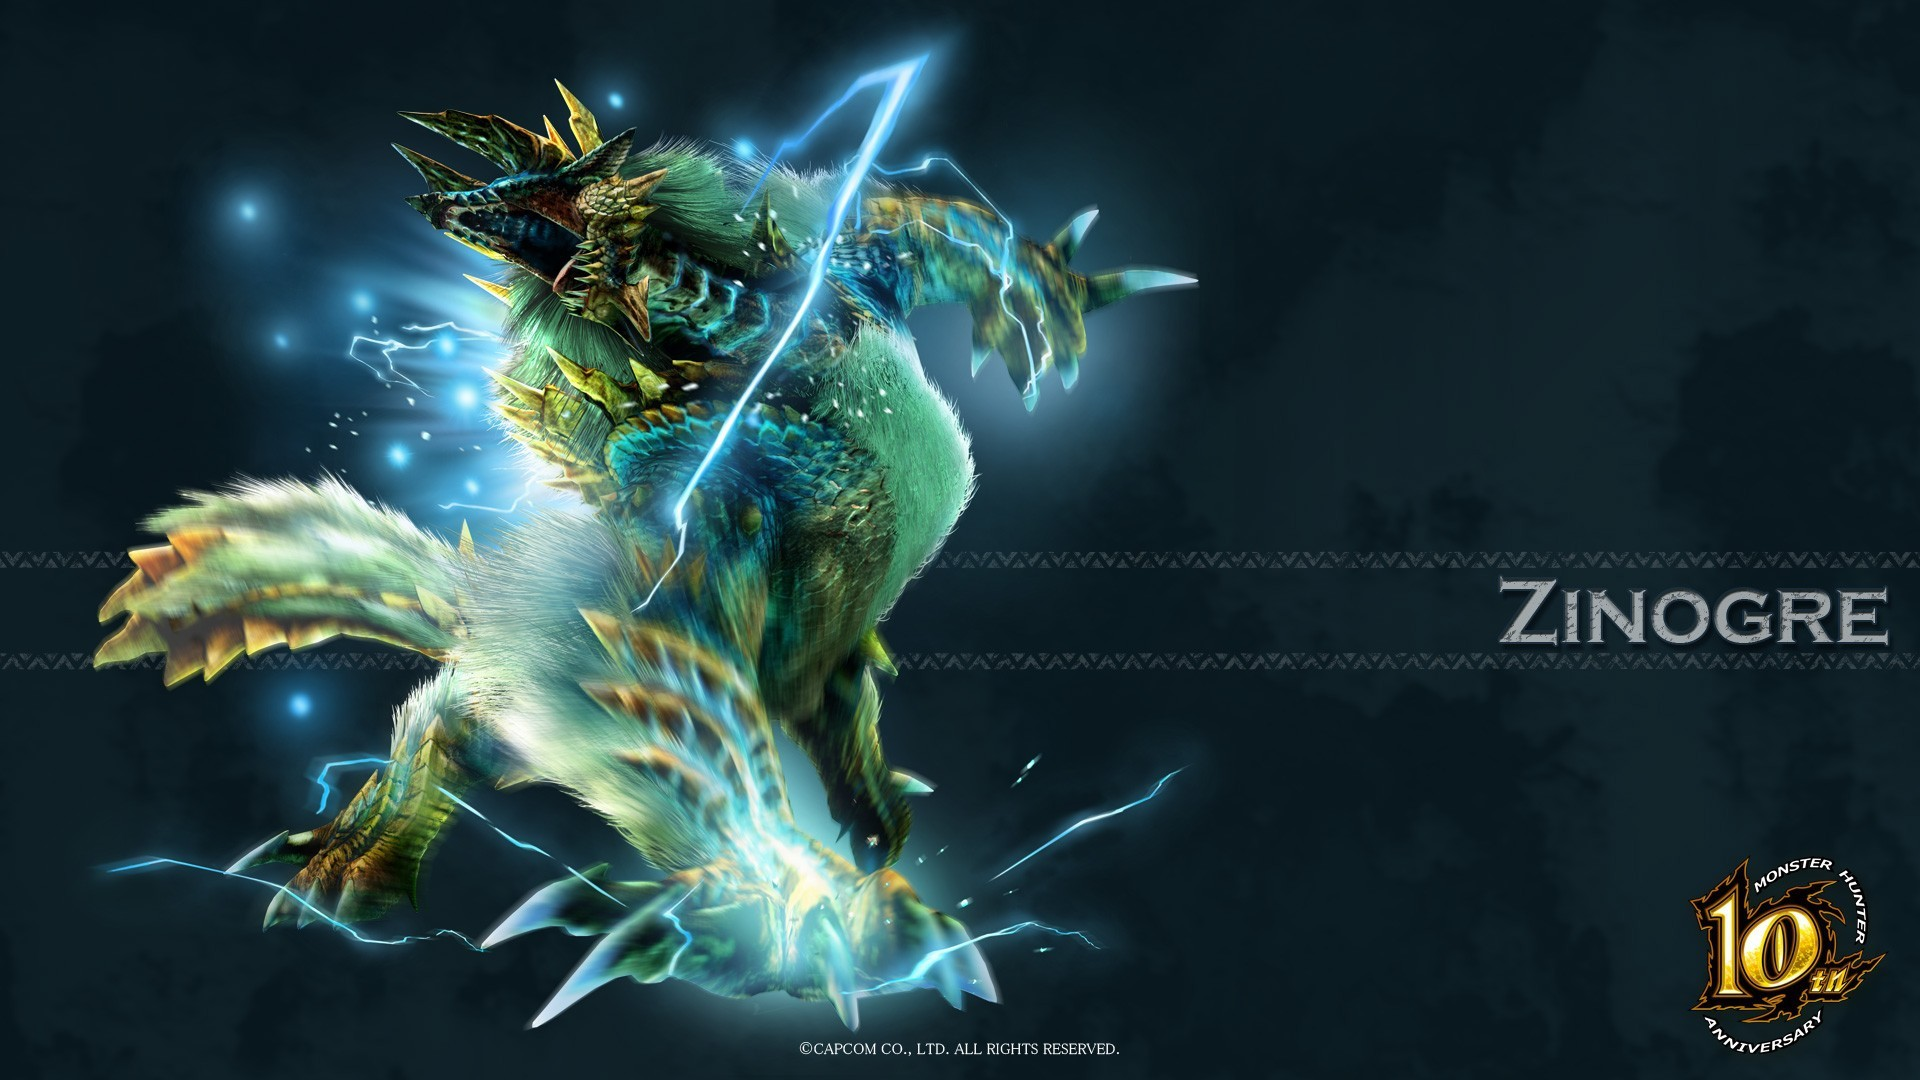 Res: 1920x1080, Zinogre of the game Monster Hunter wallpapers and images .